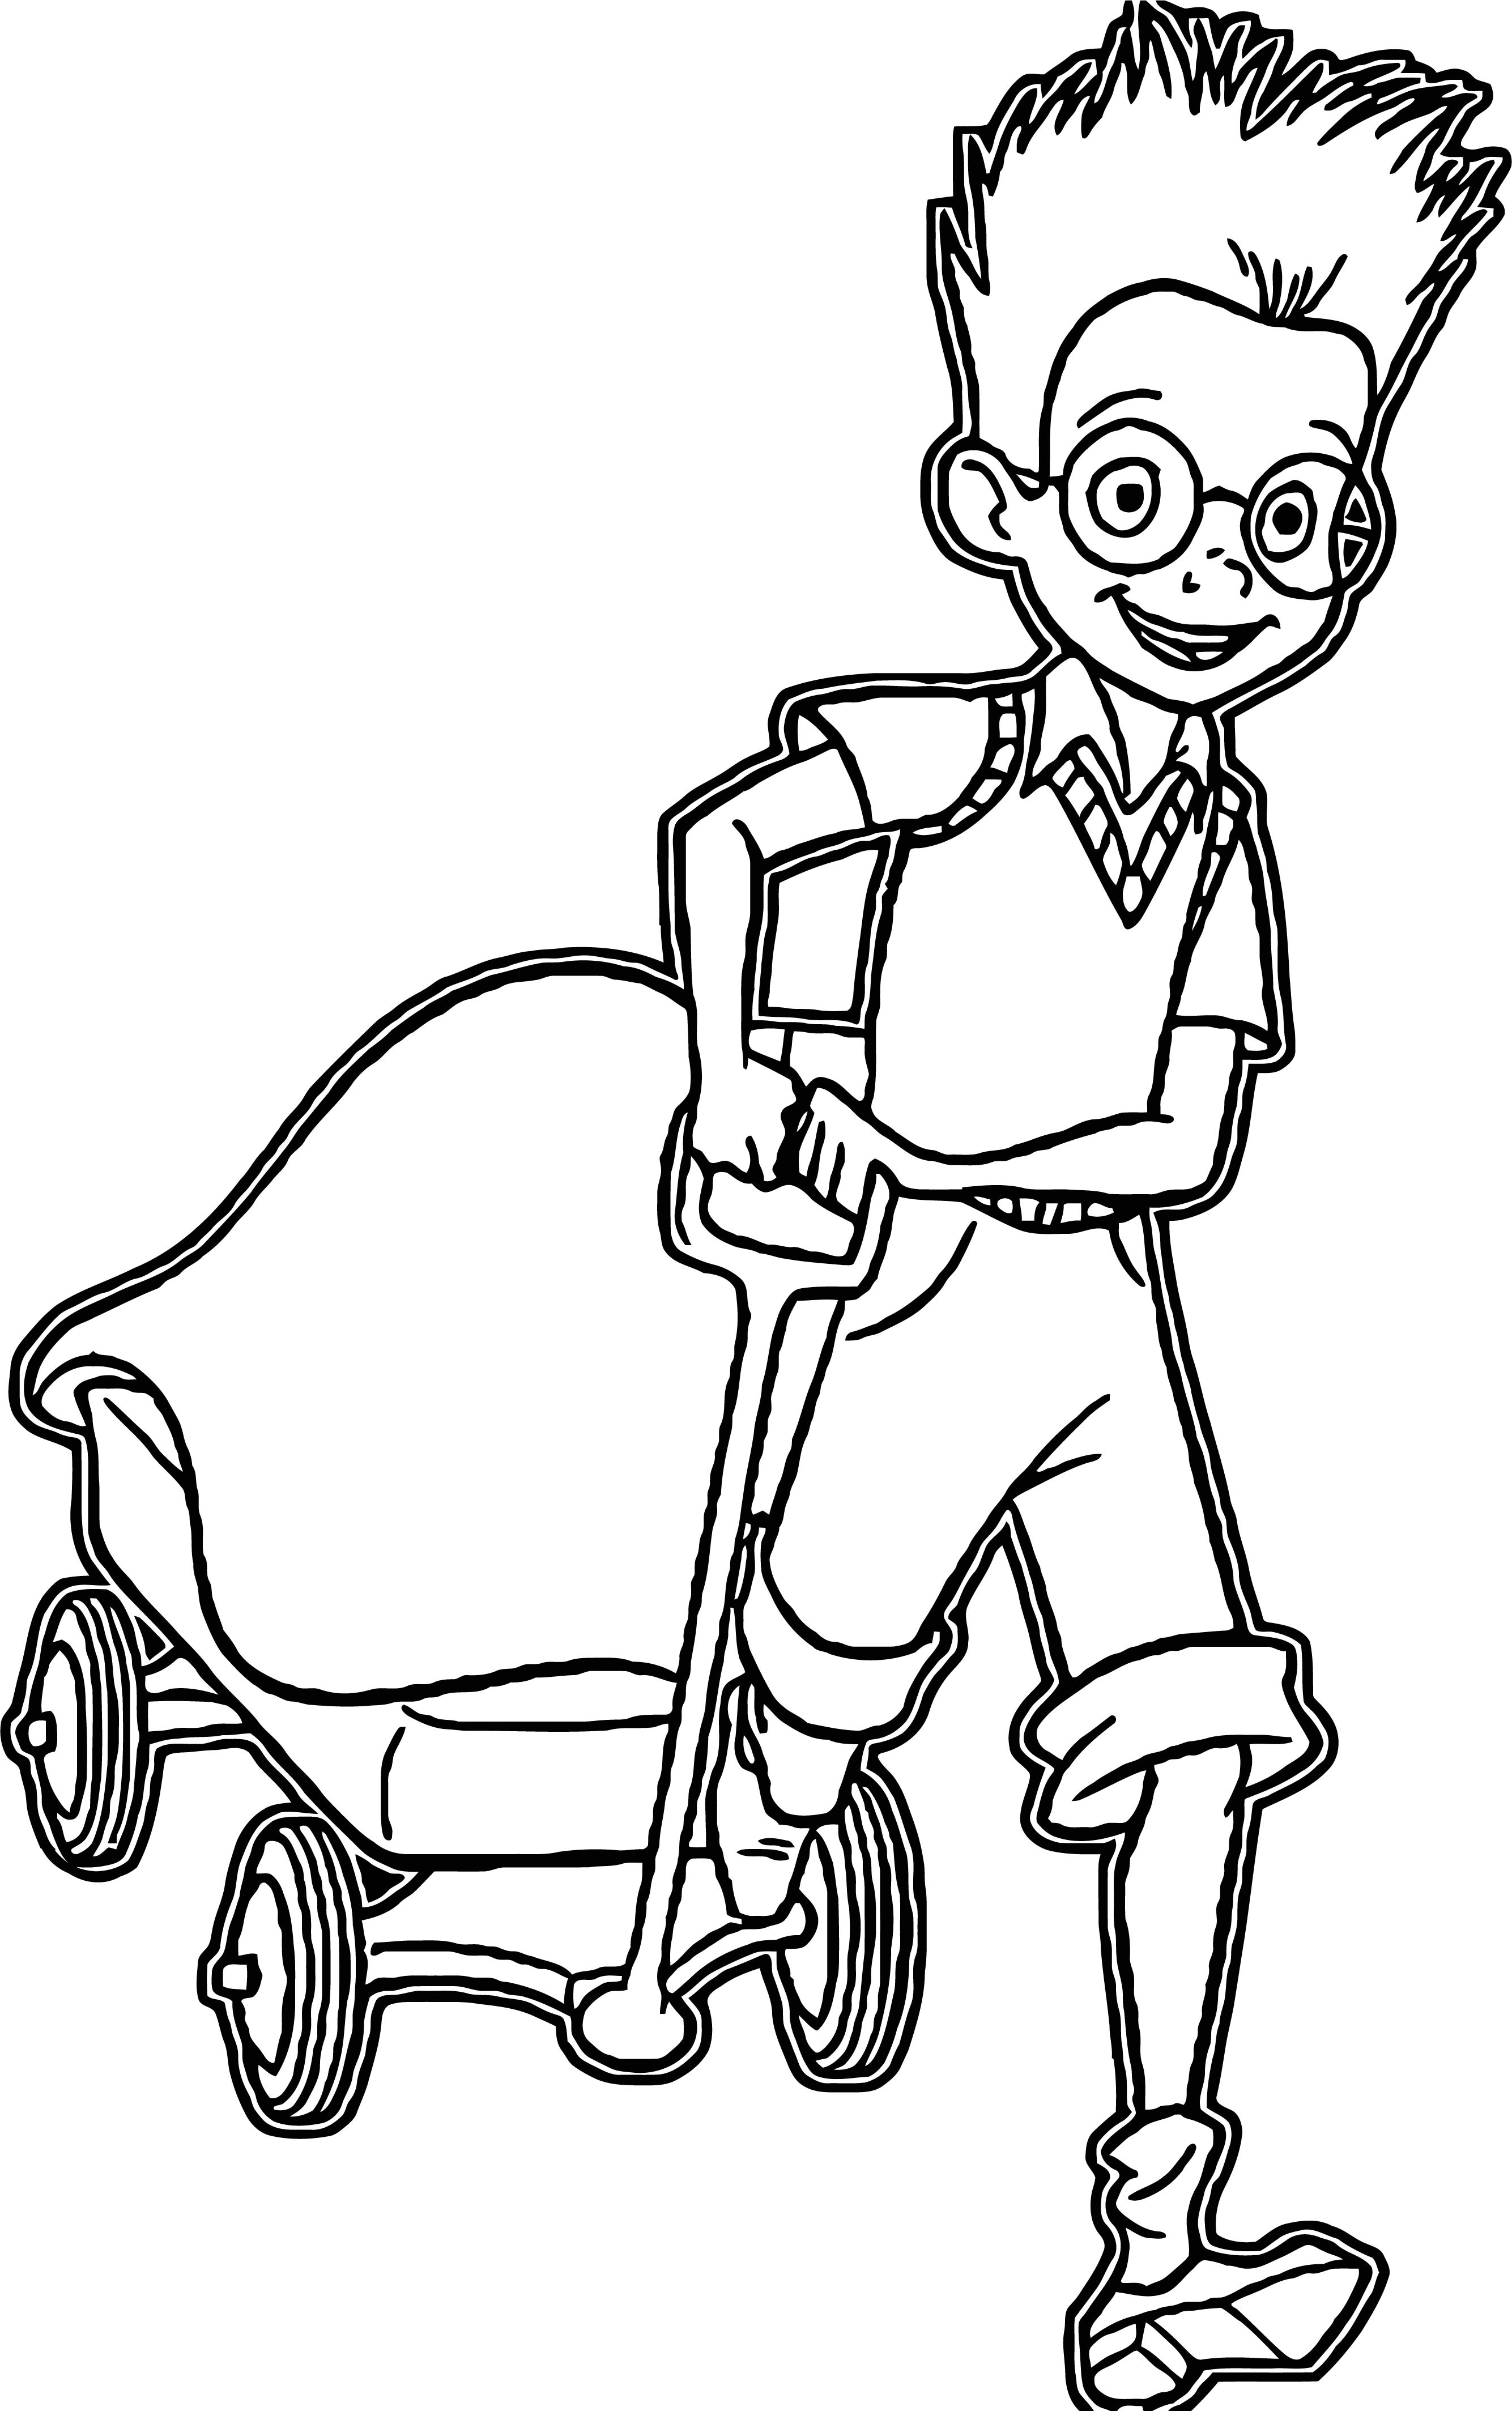 Meet The Robinsons Coloring Page 04